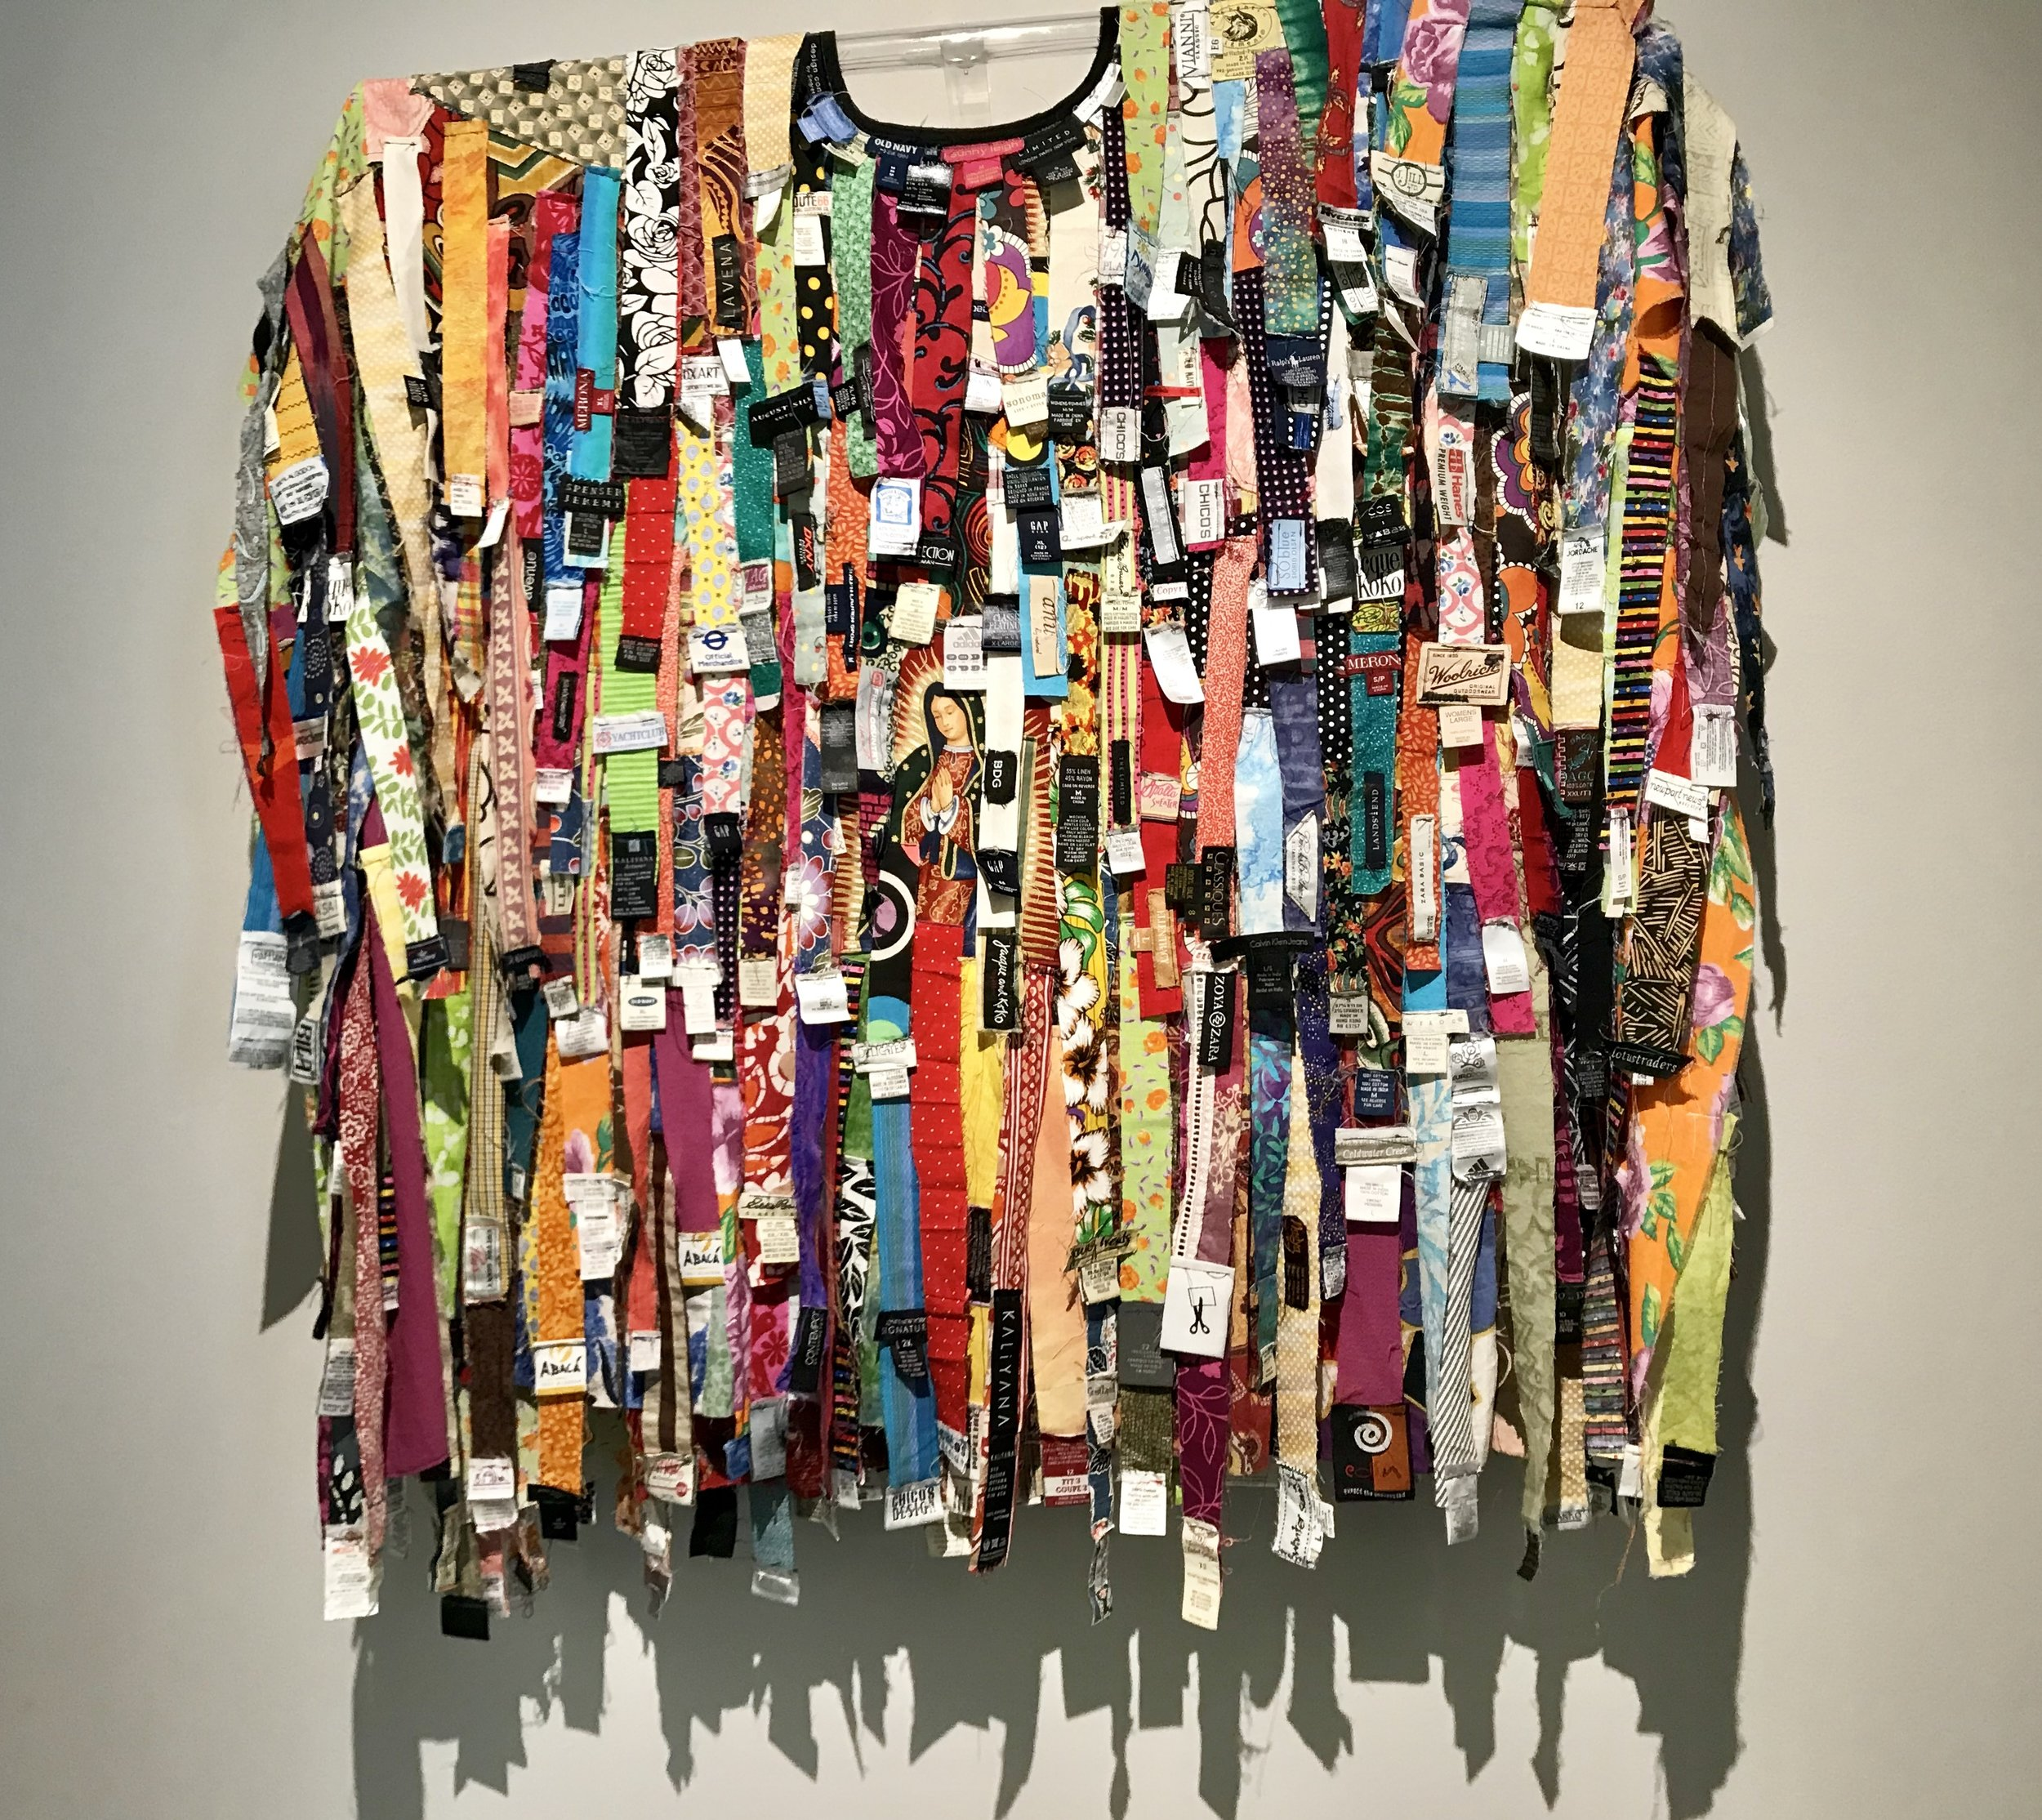 Contemporary yet so tribal in feel…All made of labels! This piece was a fav of mine in the Museum of Crafts in Mexico City.